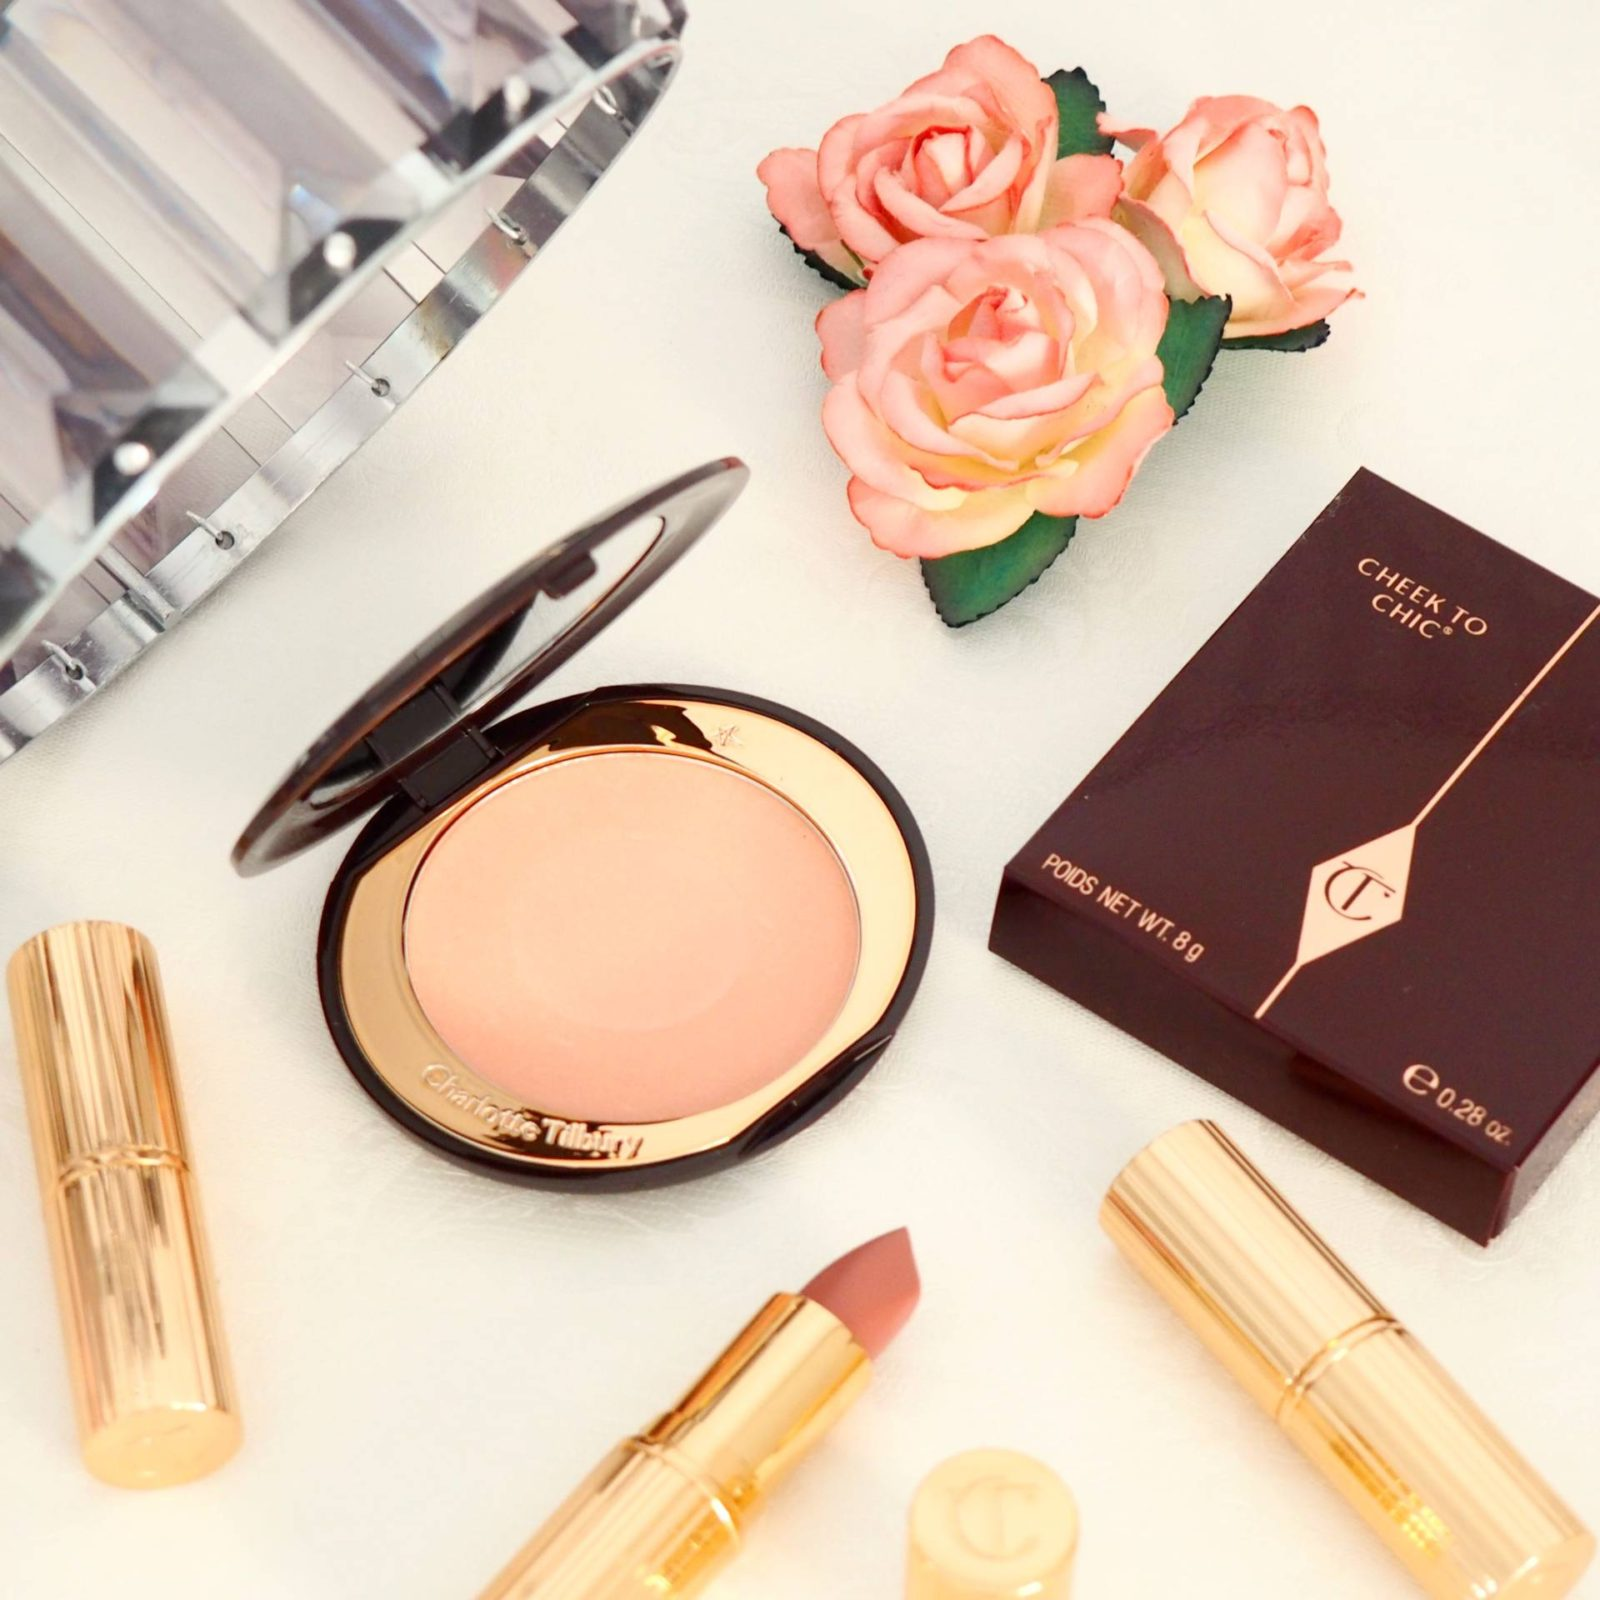 Charlotte Tilbury Cheek to Chic Swatches